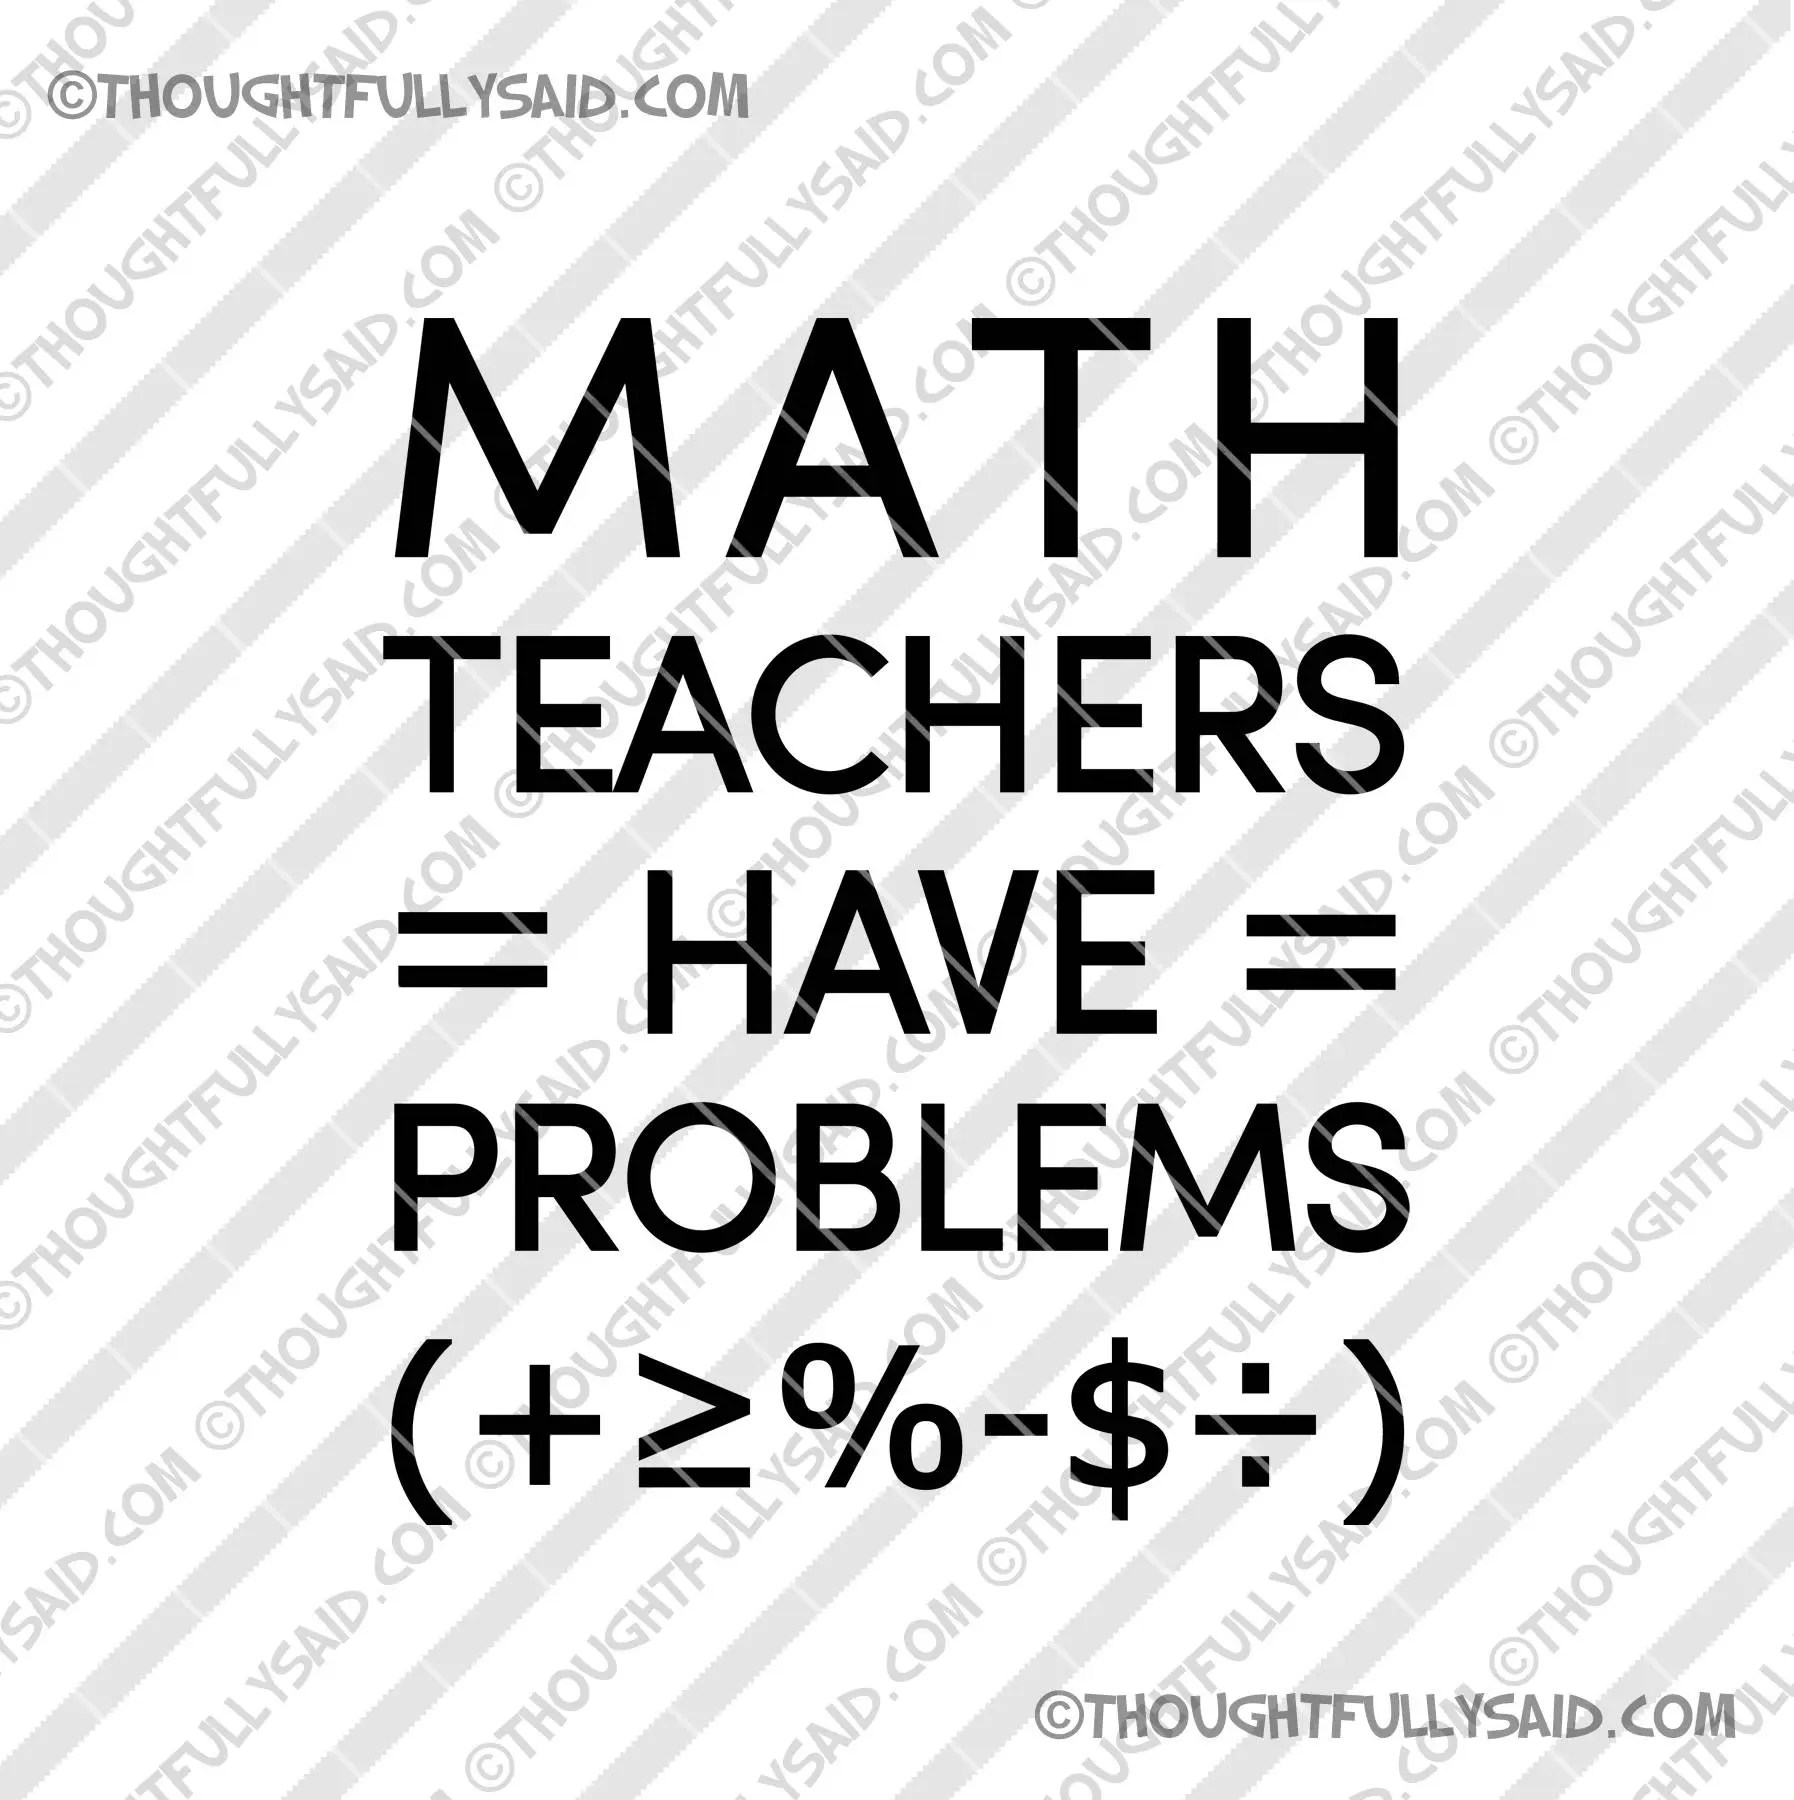 Math Teachers Have Problems design files, funny, humorous